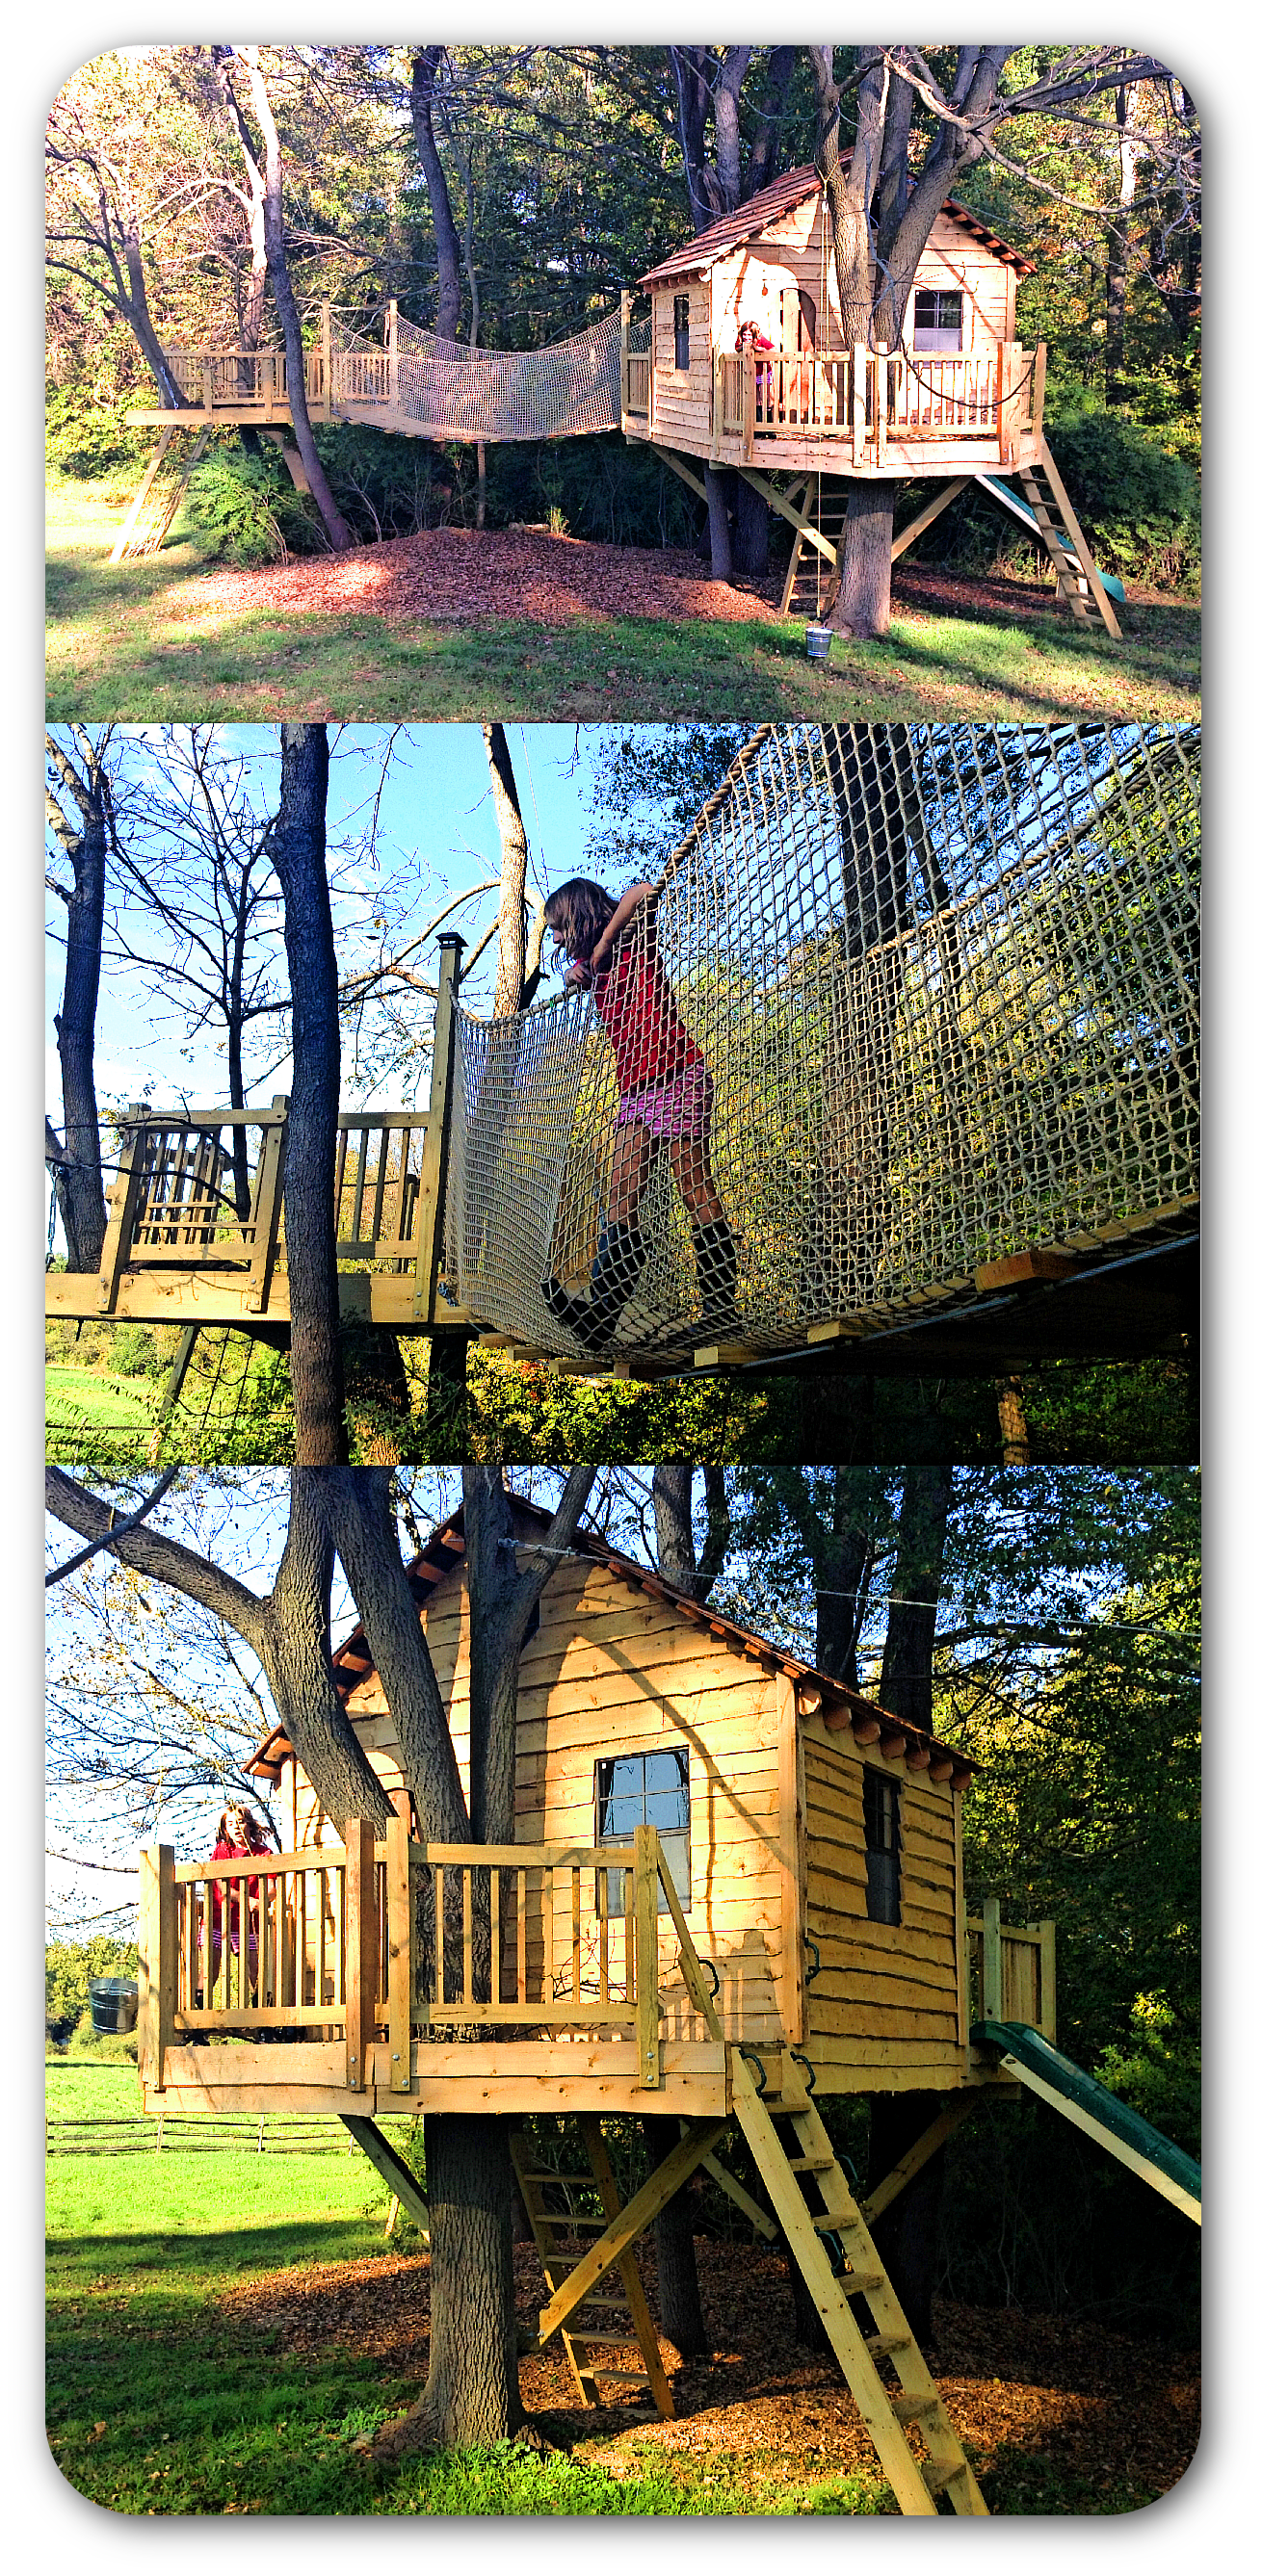 The ultimate treehouse for two kids. Includes a 100 square foot tree on design on metal, design on soap, design on money, design on door, design on nail, design on paper, design on cake, design on dollar bill, design on key, design on bike, design on computer screen, design on line, design on book,